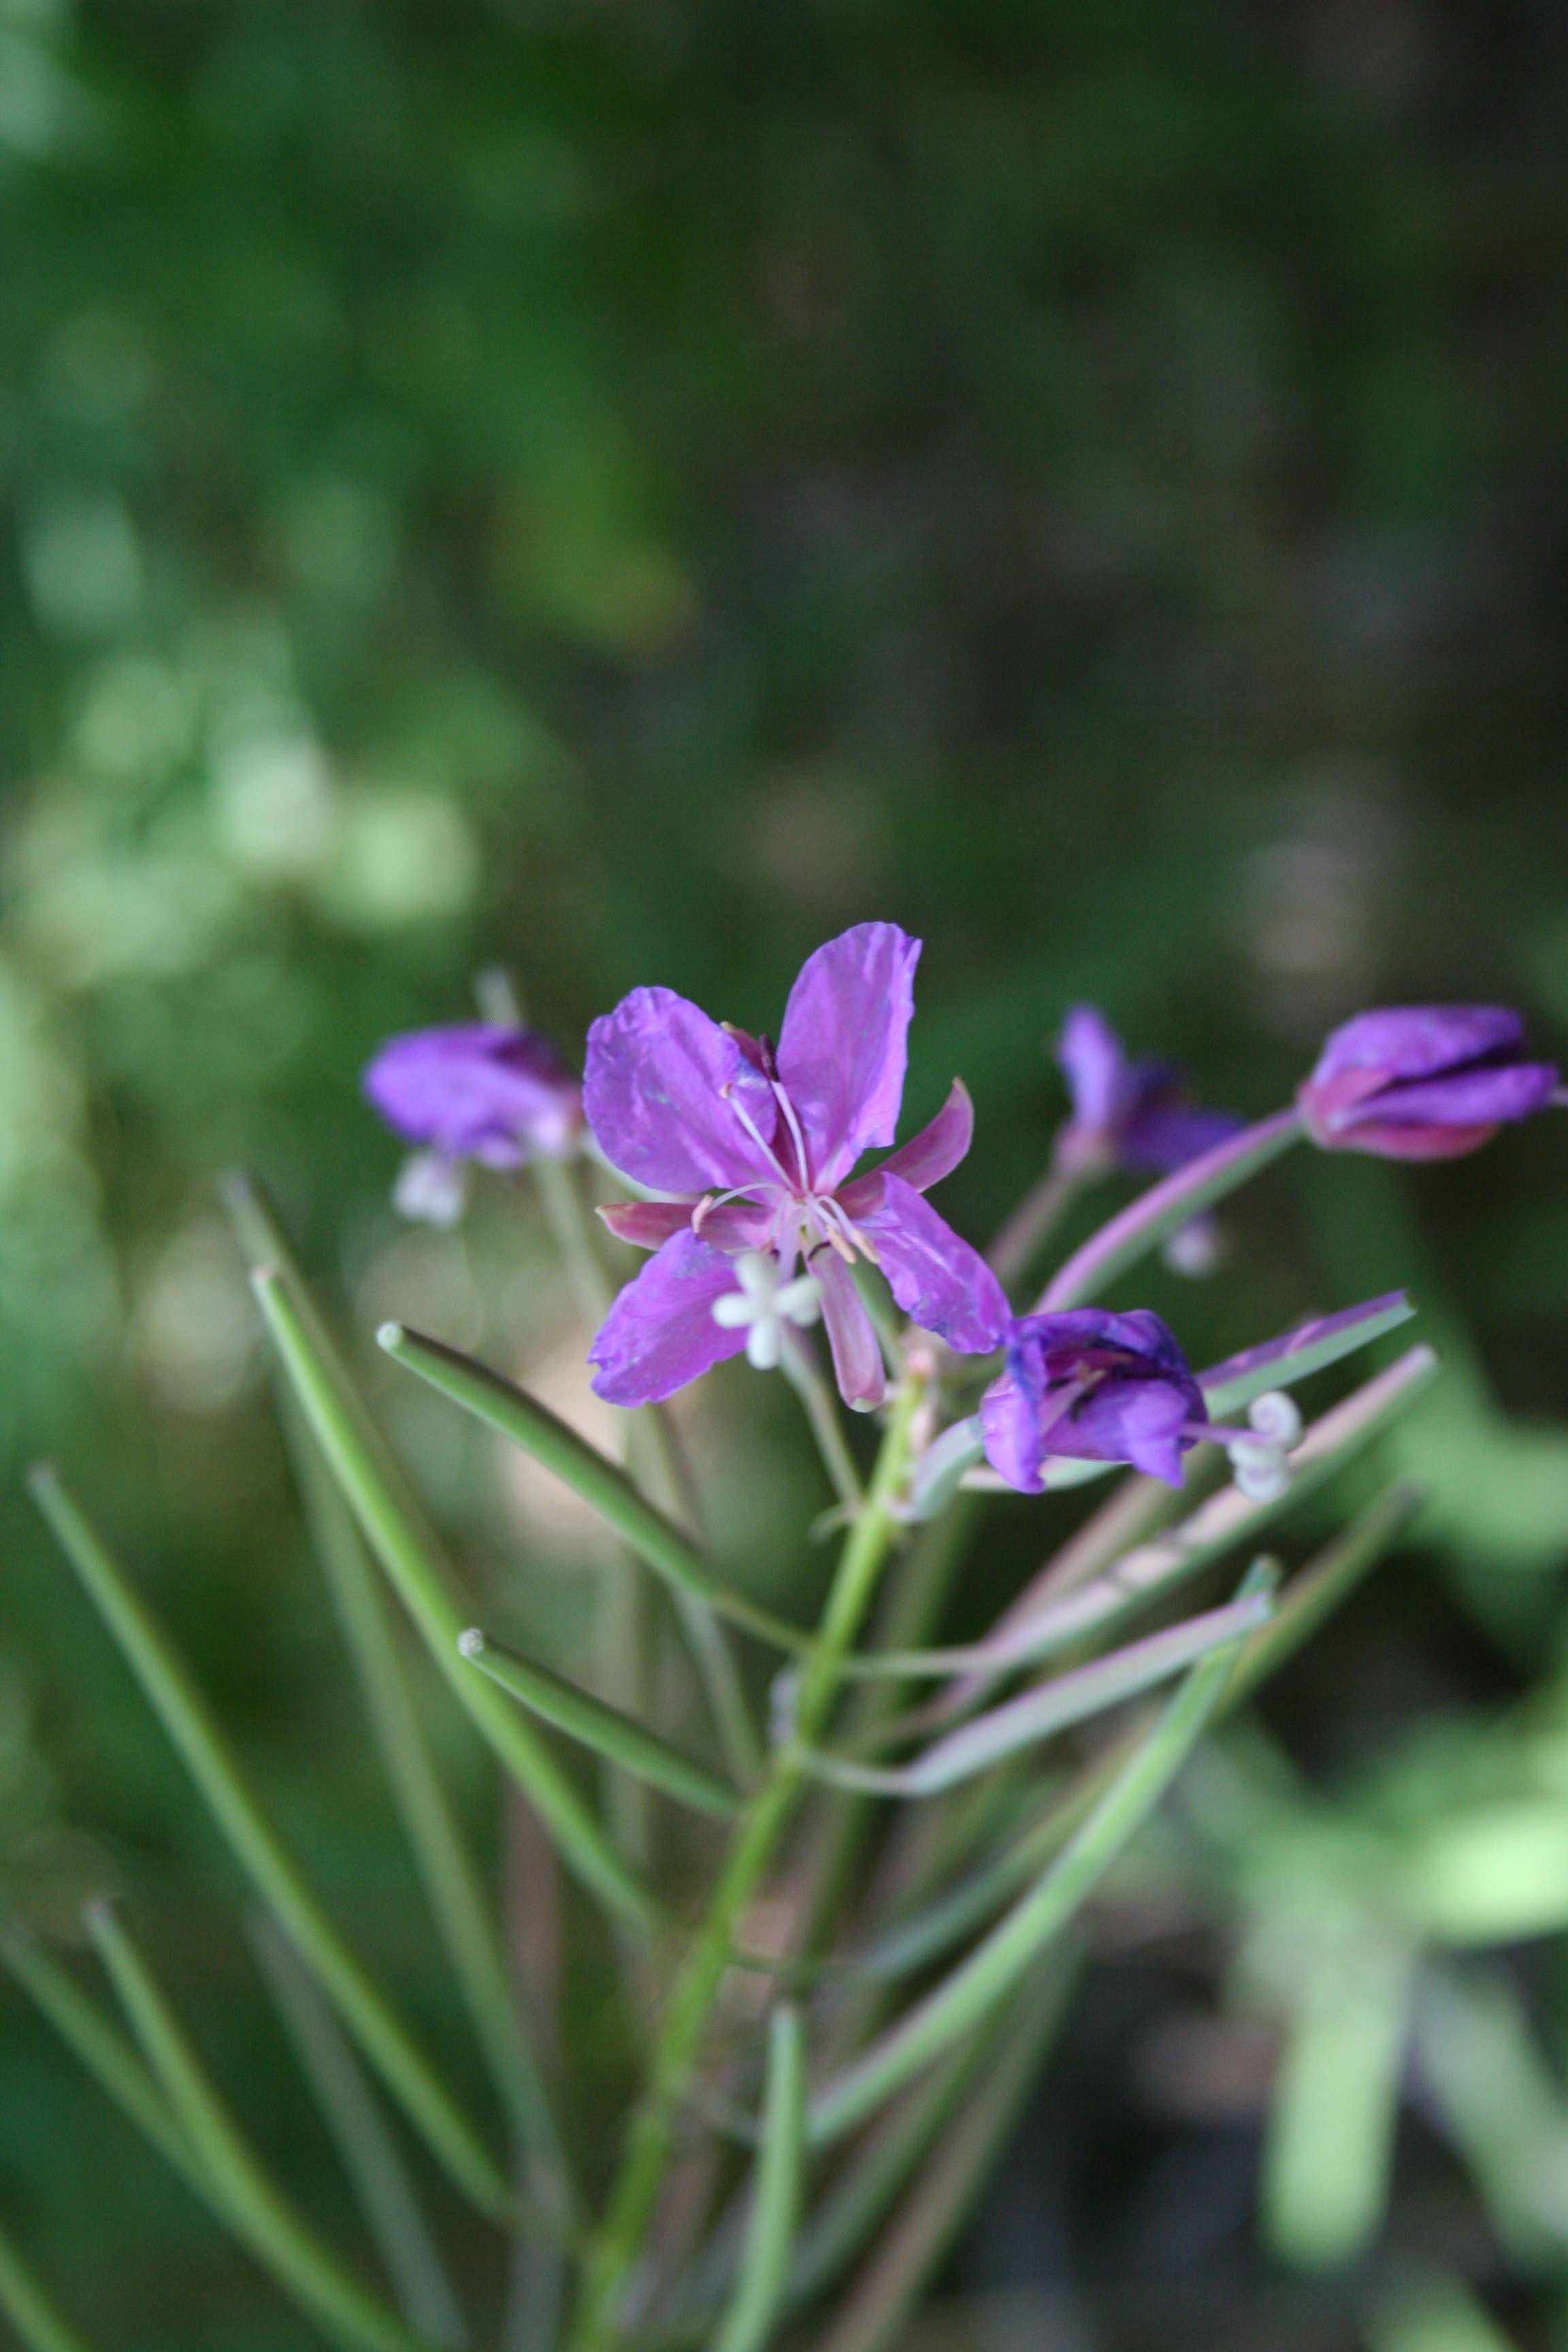 clarkia single guys Godetia is a flowering plant in my garden : clarkia amoena - kindle edition by maya baron, w tohme download it once and read it on.